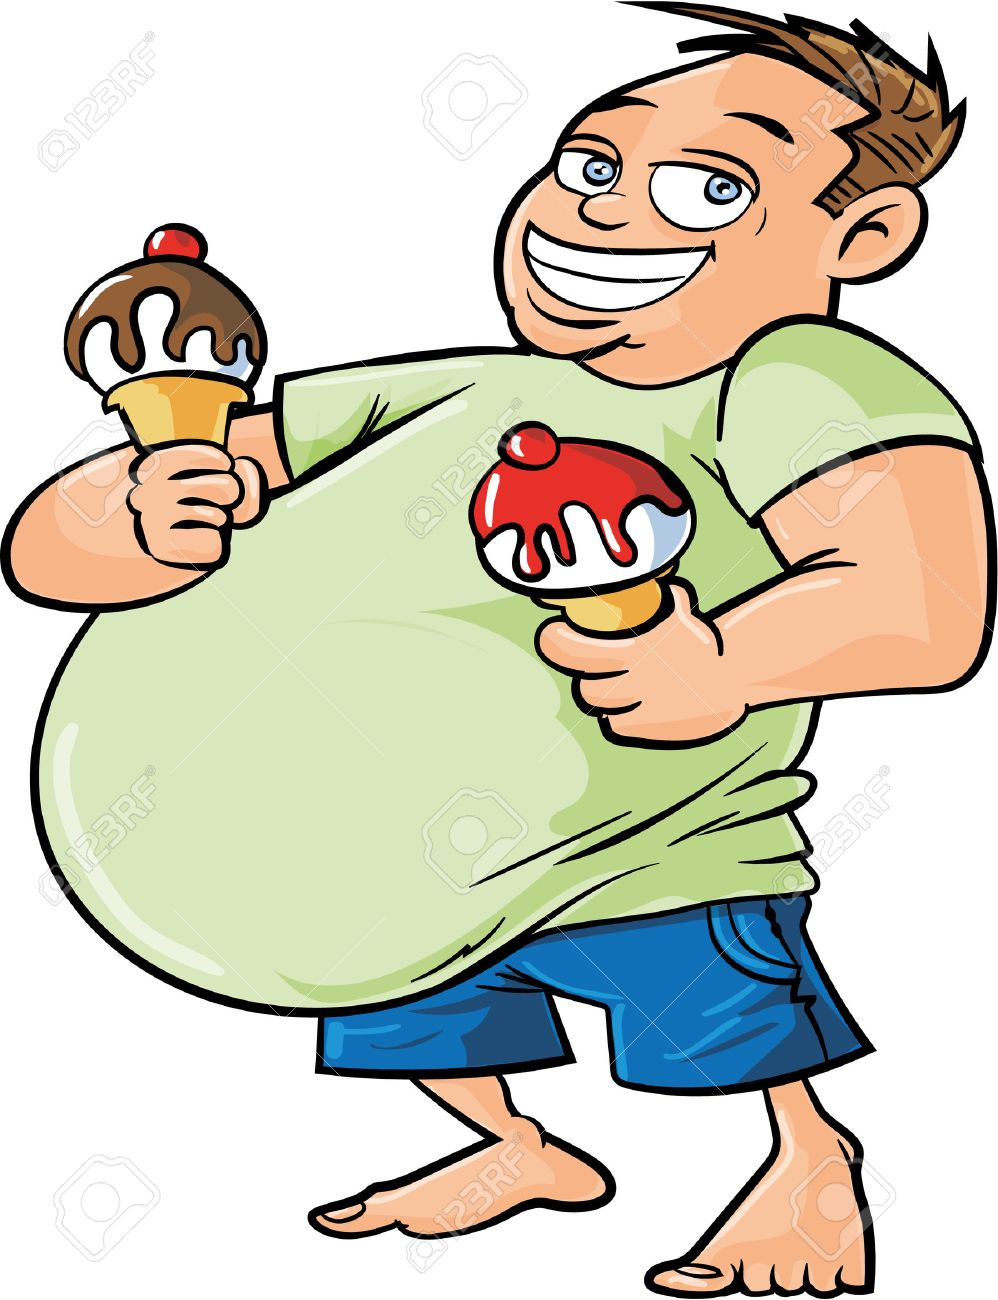 Image result for body fat cartoon